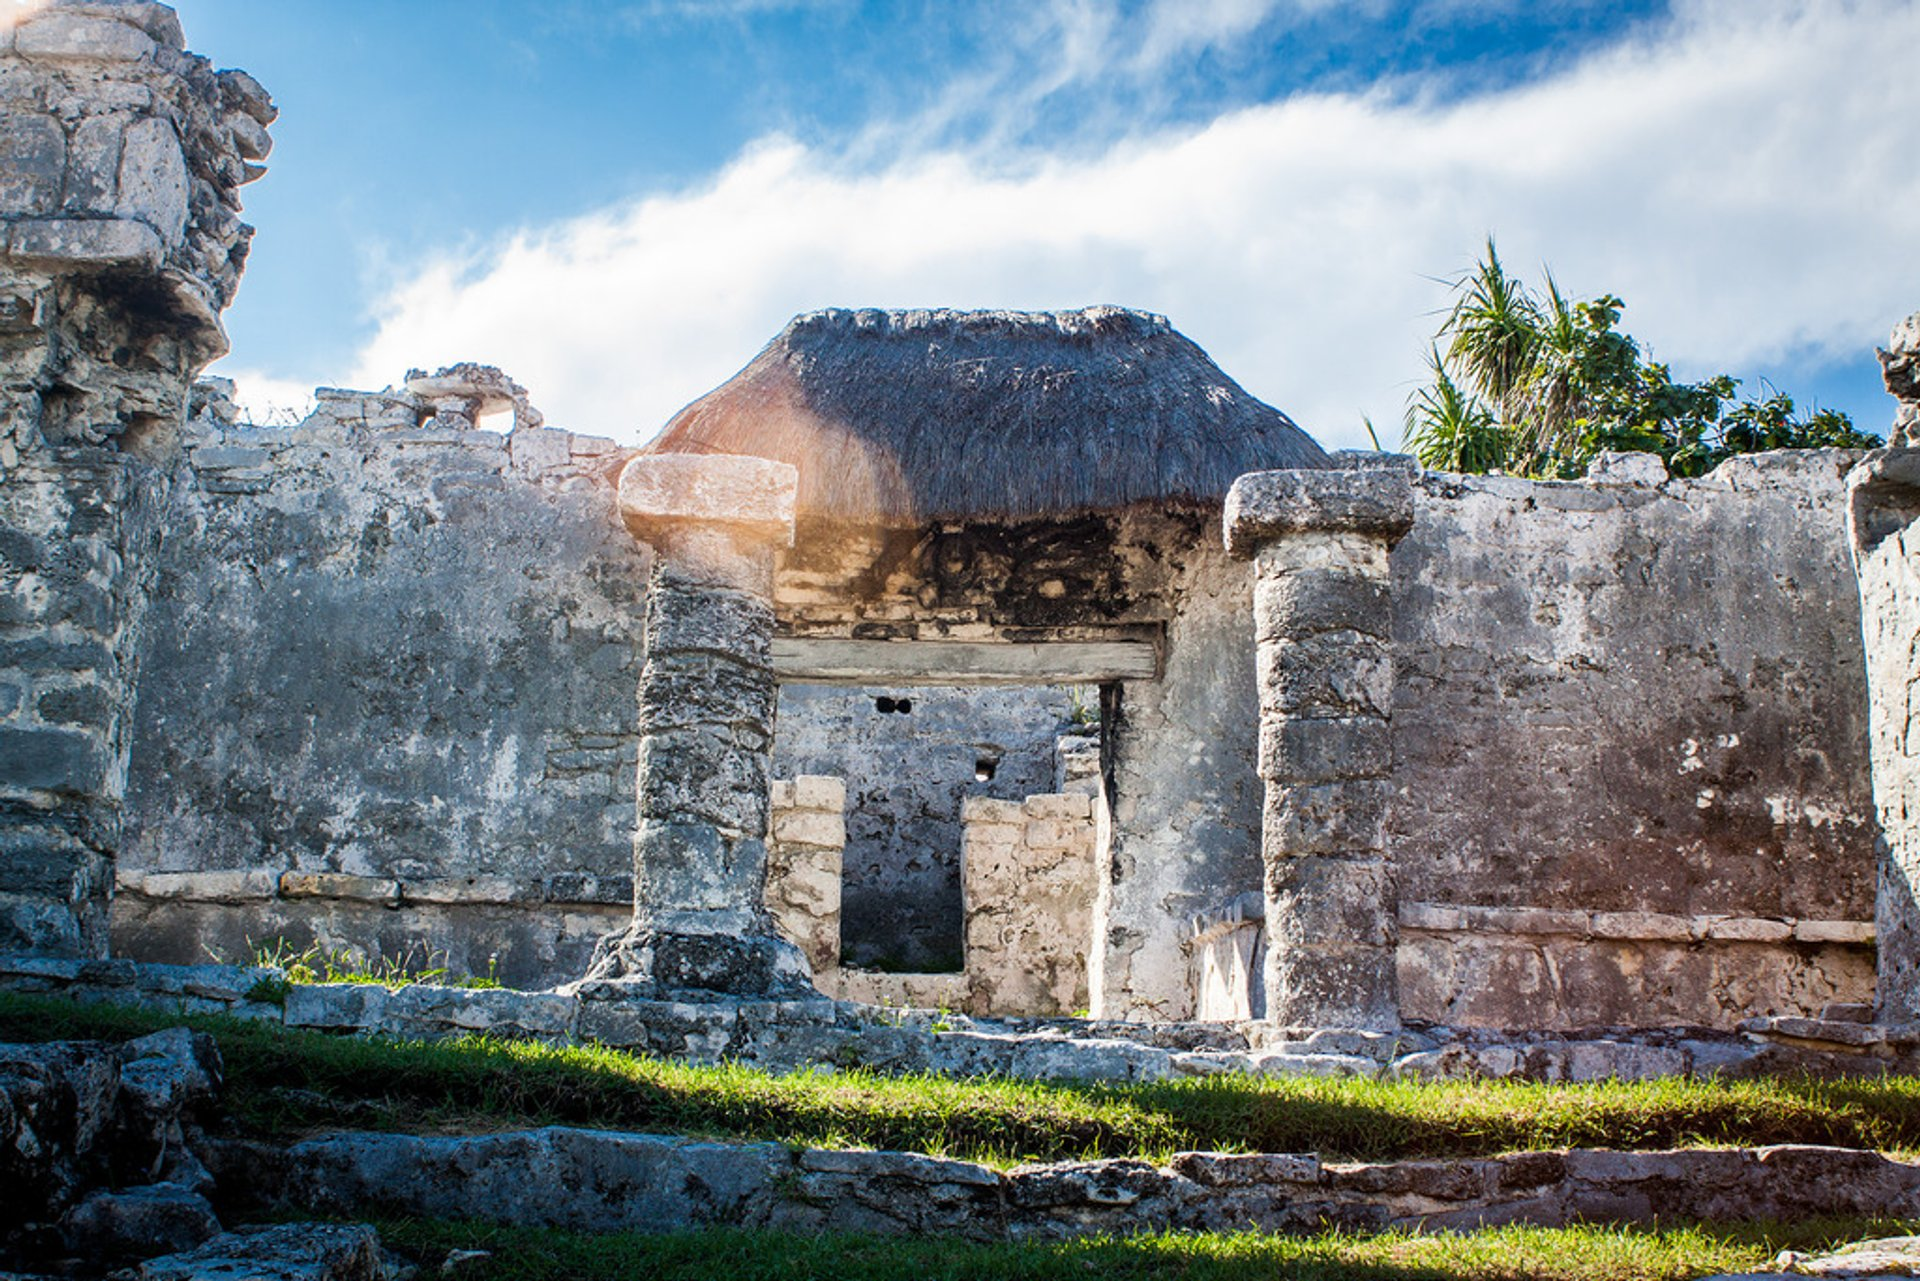 Exploring the Mayan Ruins in Mexico 2020 - Best Time